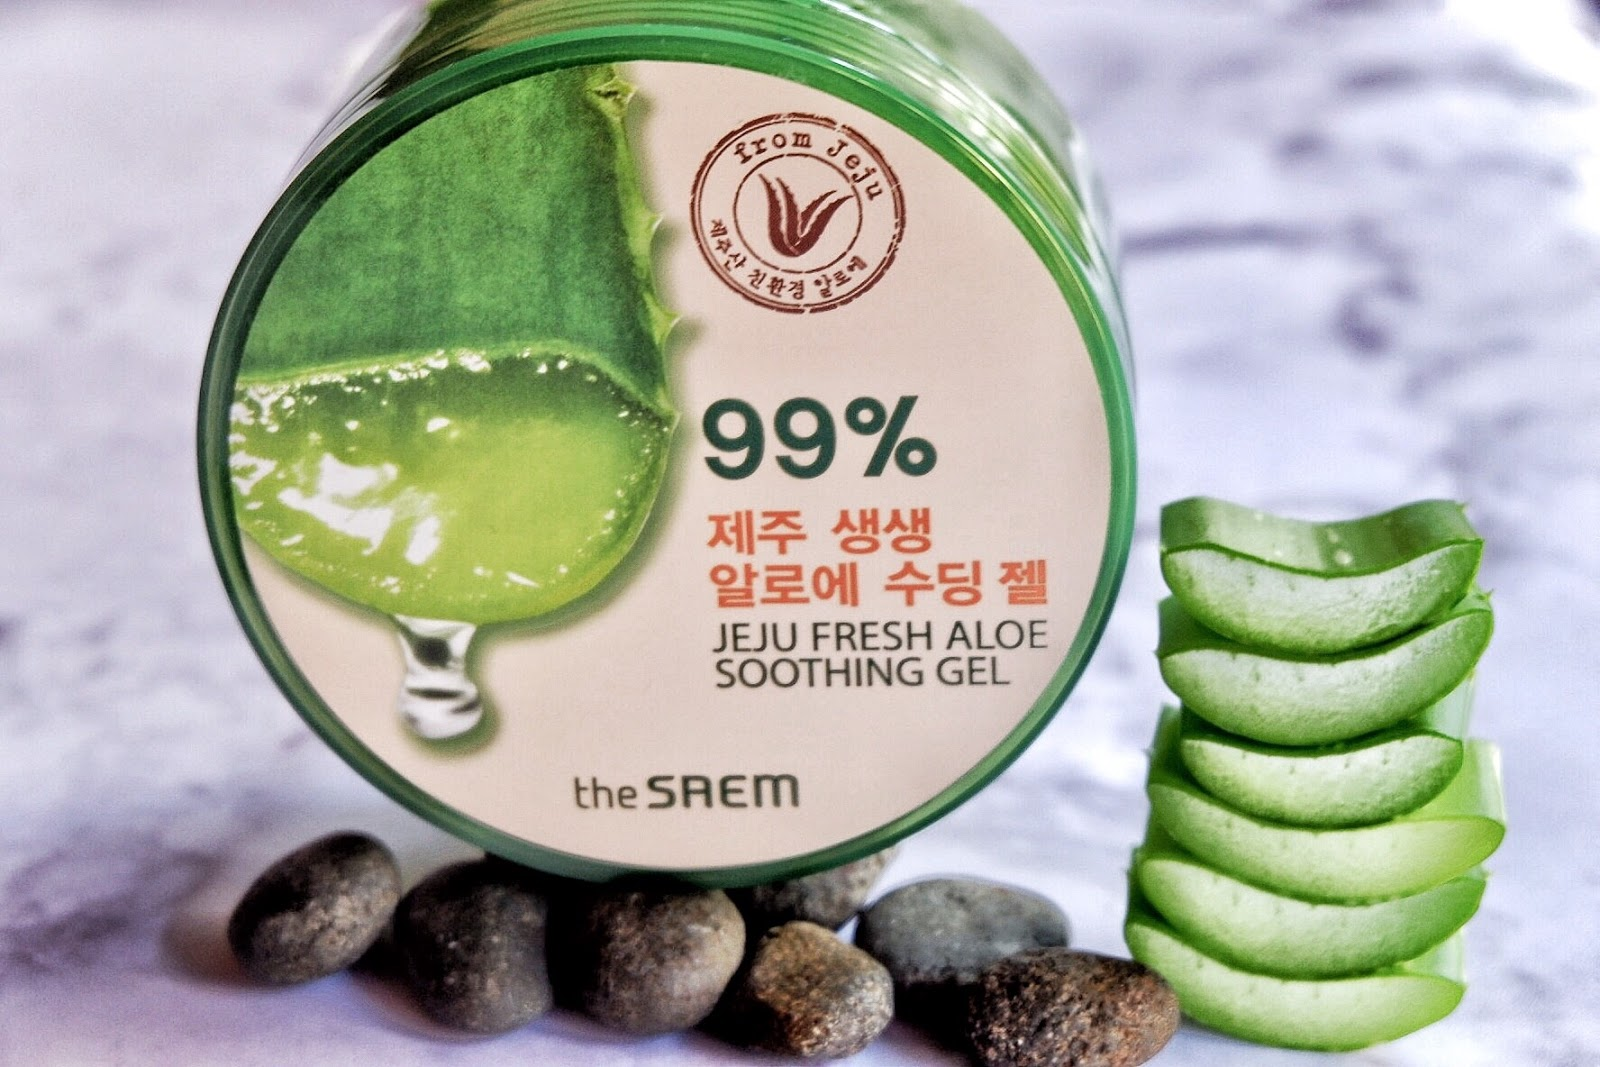 Review The Saem Jeju Fresh Aloe Soothing Gel 99